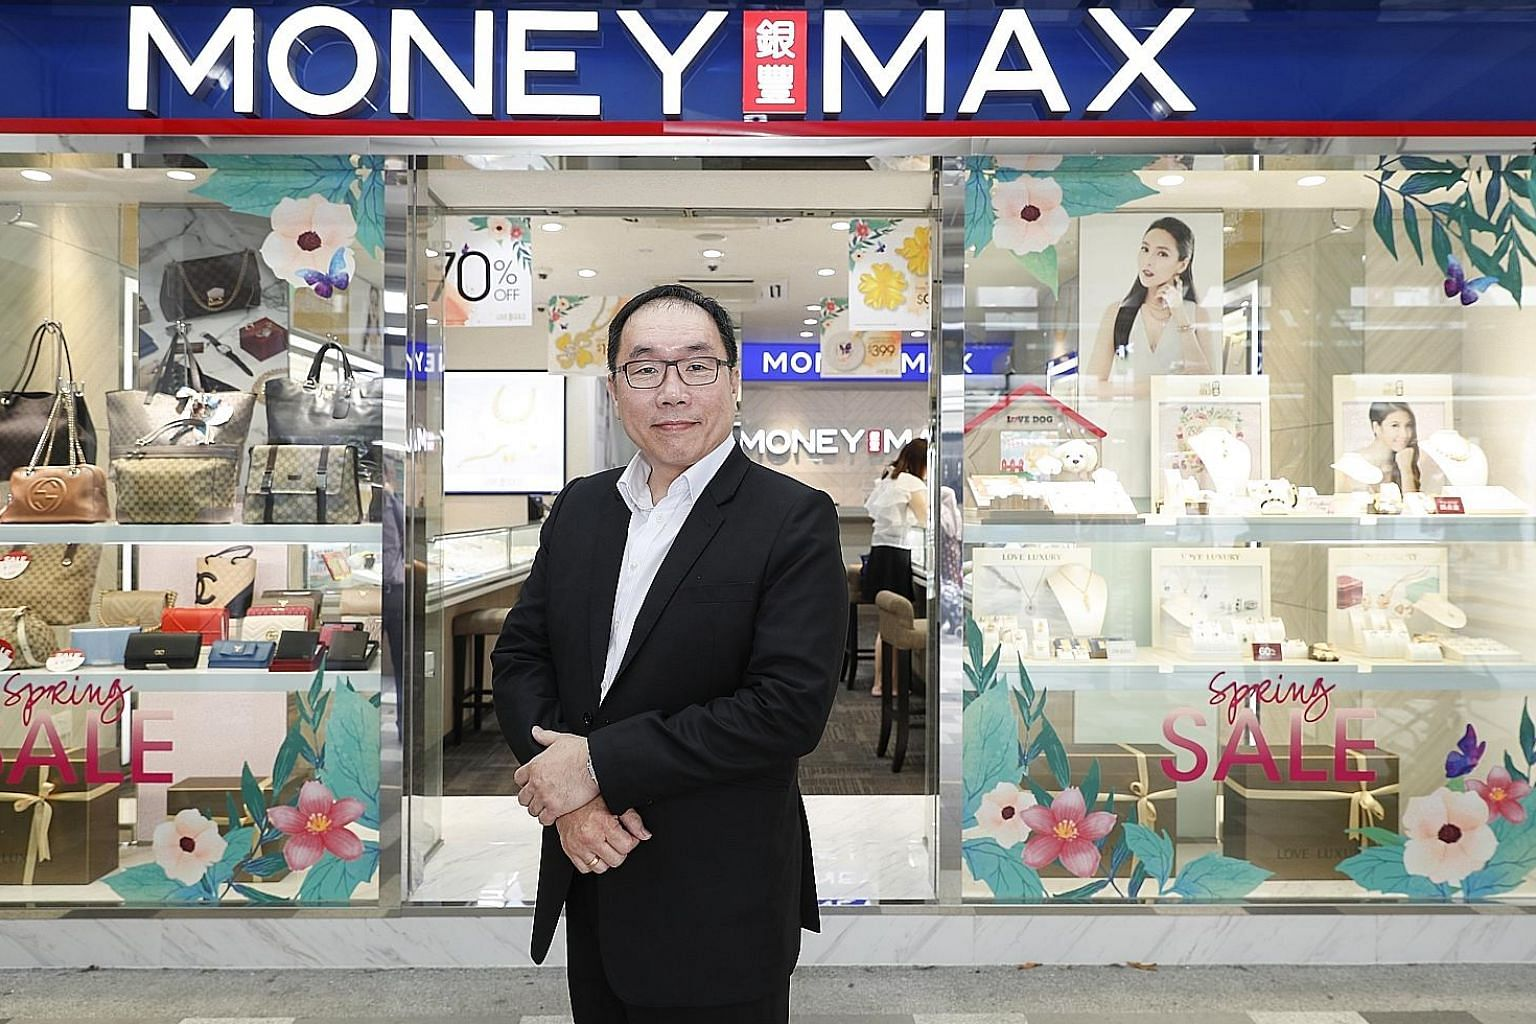 MoneyMax executive chairman and chief executive Lim Yong Guan says the company was incorporated in 2008 with a vision to transform traditional pawnbroking into a modernised, trusted and convenient financial solutions provider. Today, each store is br